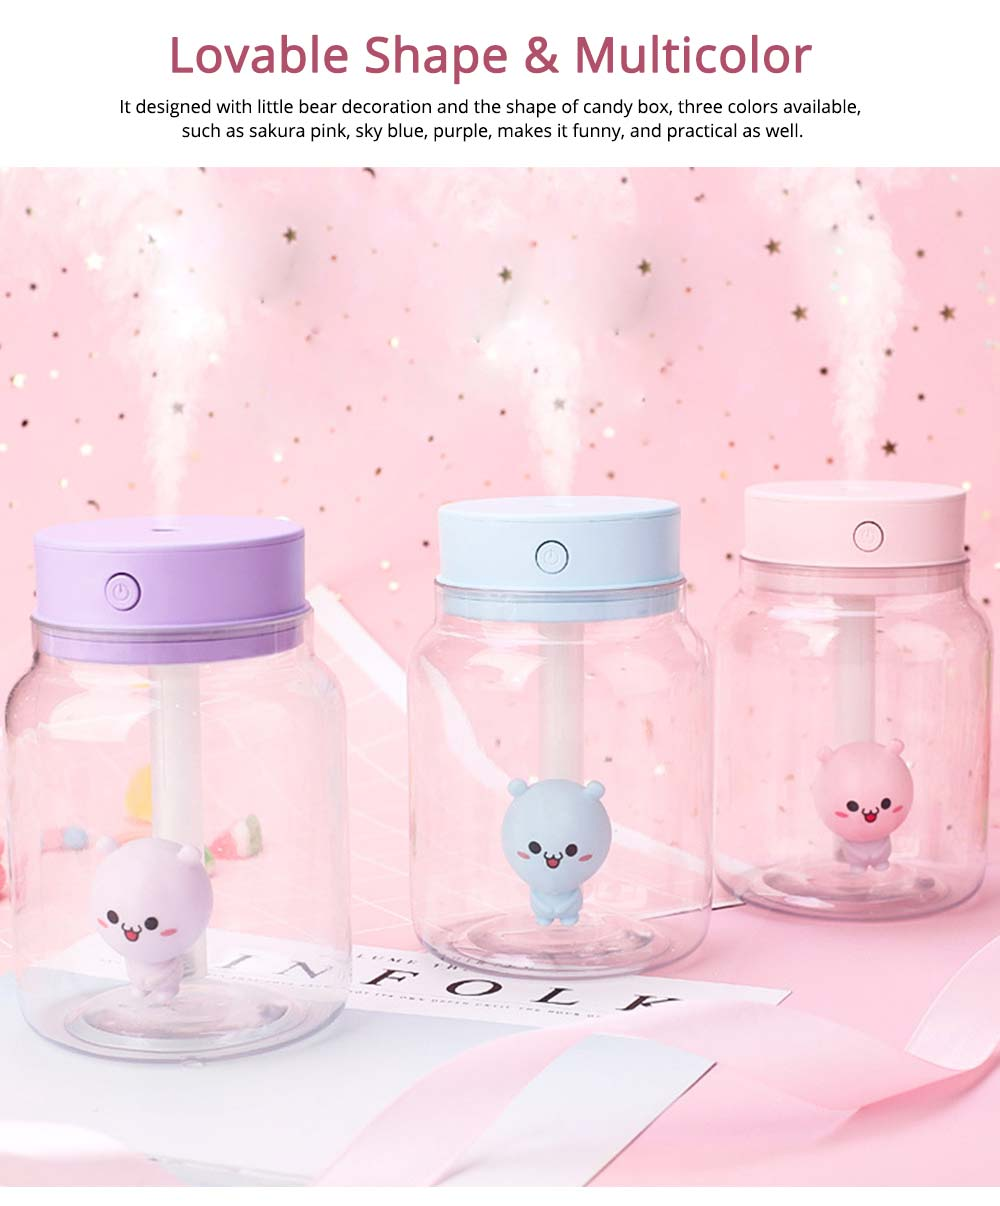 Mute Night Light Humidifier, Candy Bottle Humidifier for Office, Home, 400ML Capacity 6